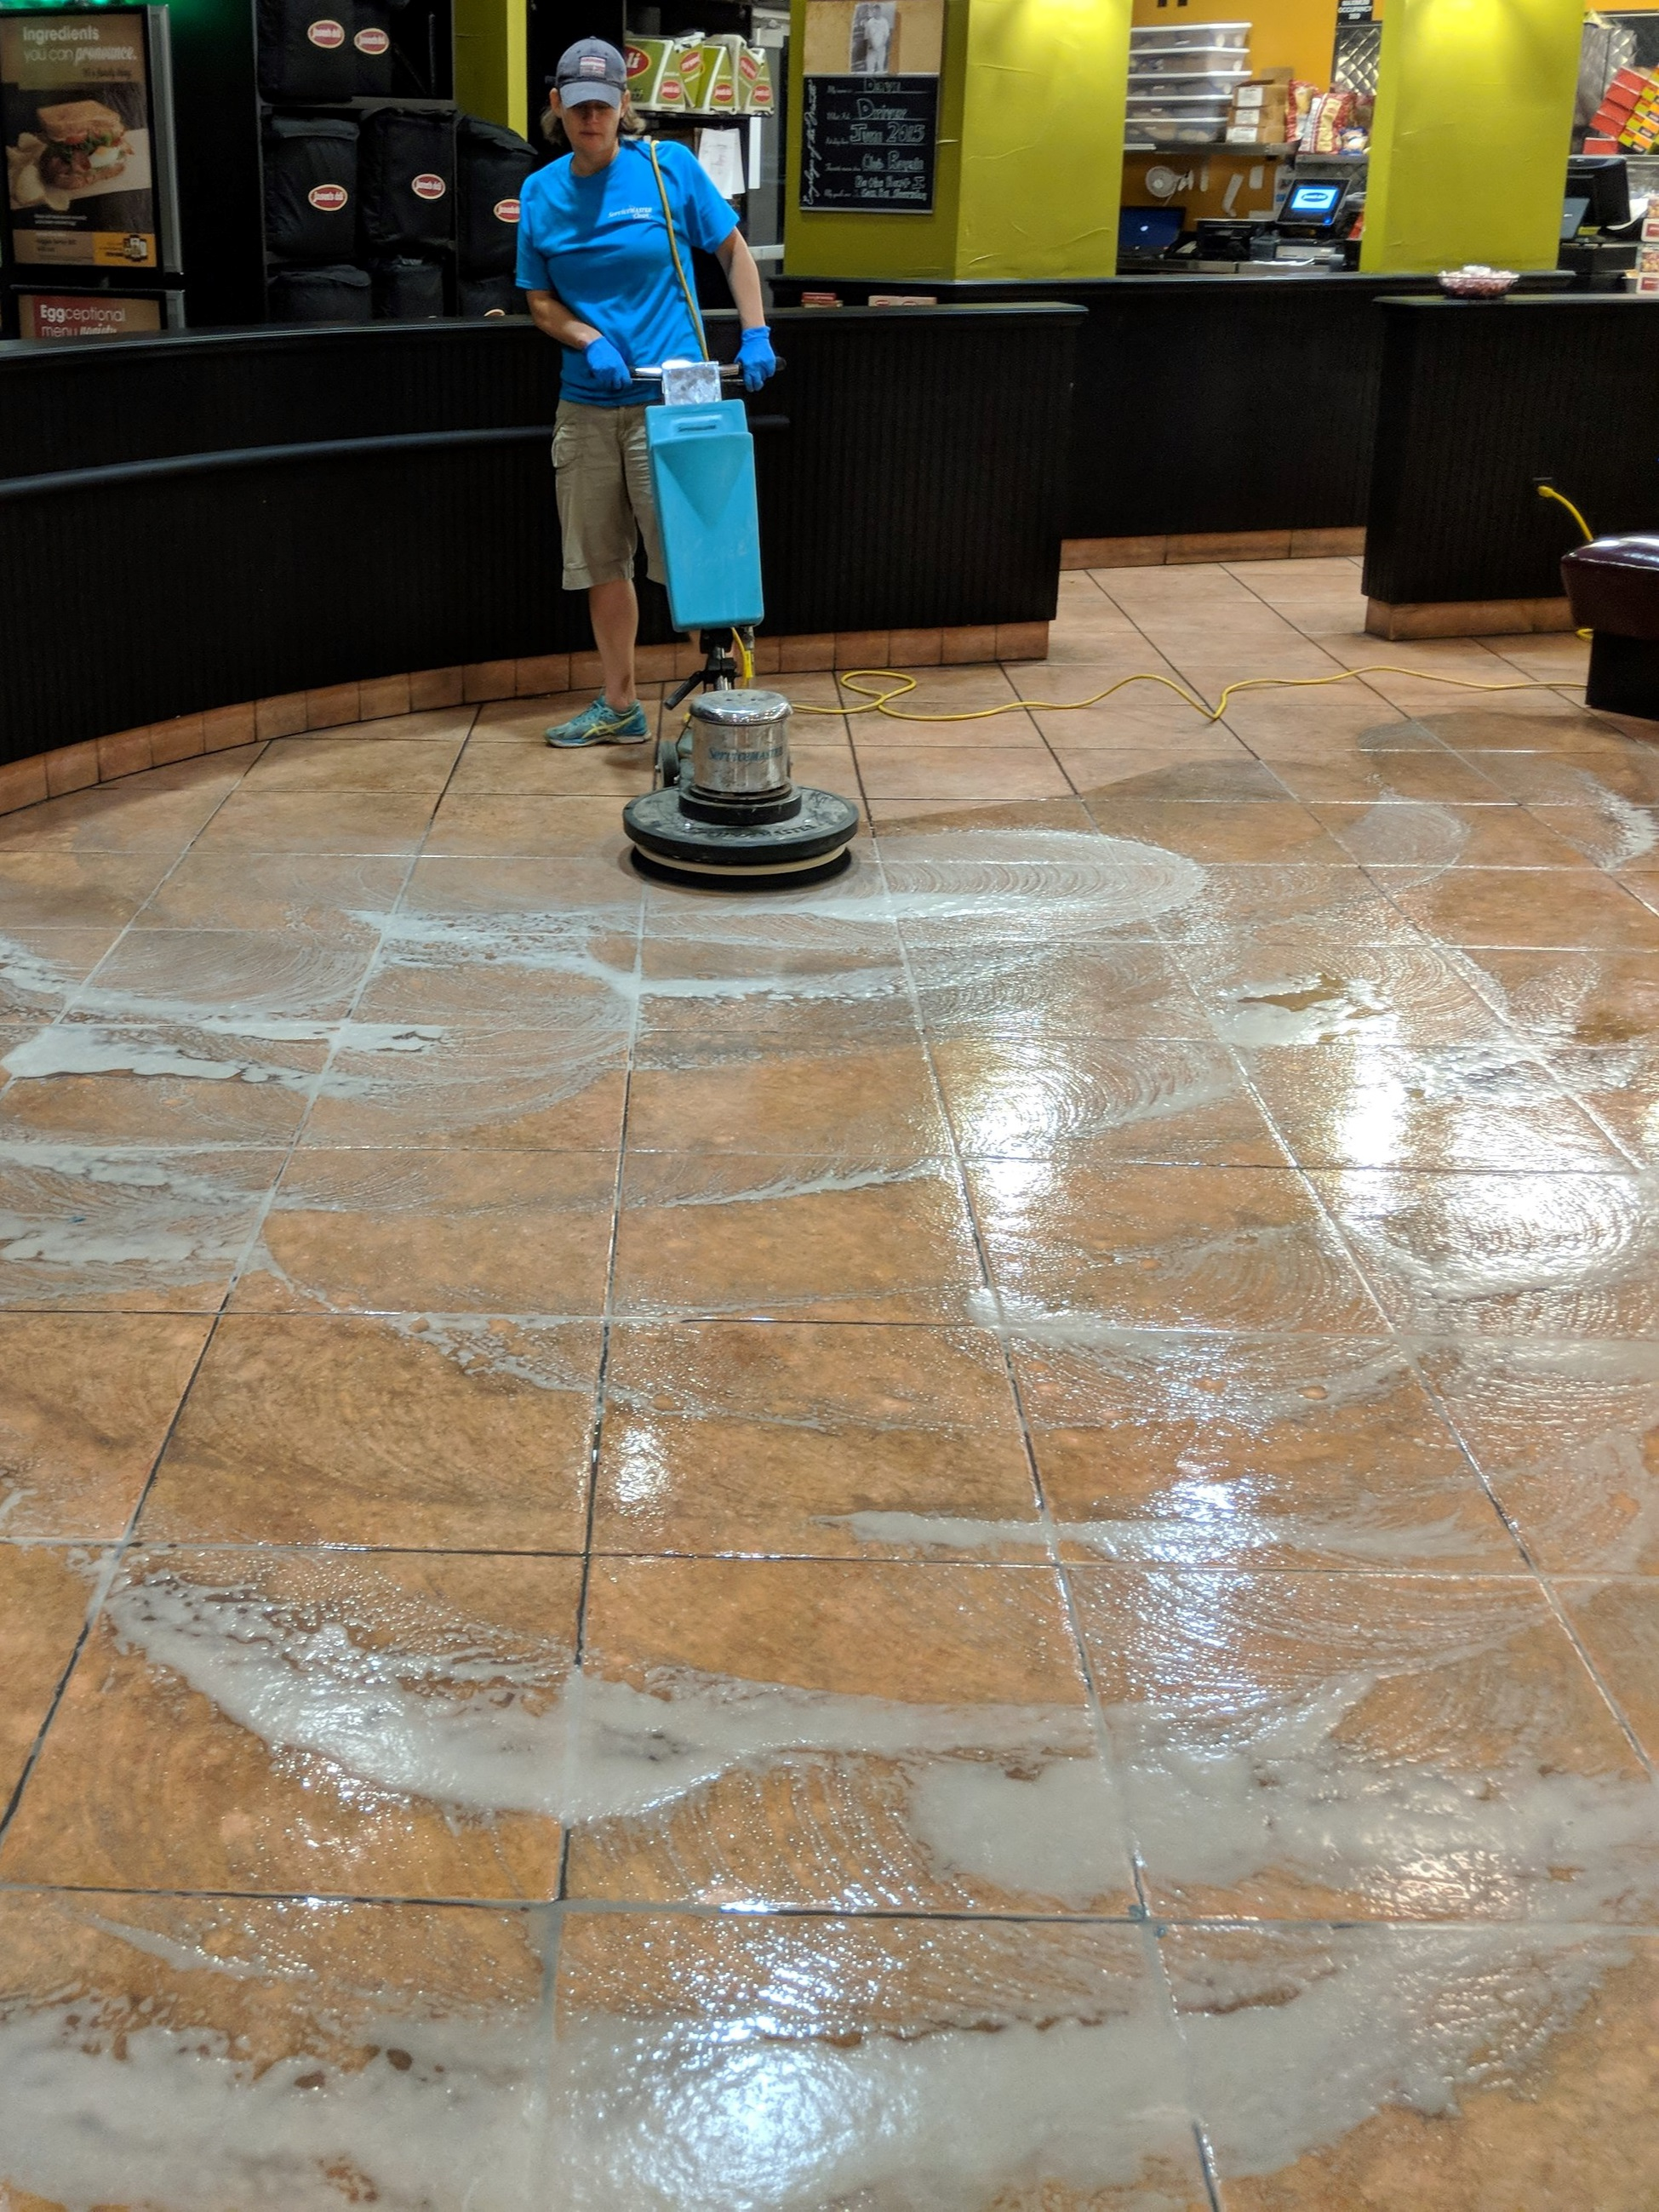 Working the overnight shift scrubbing a floor. 10:00pm-6:00am